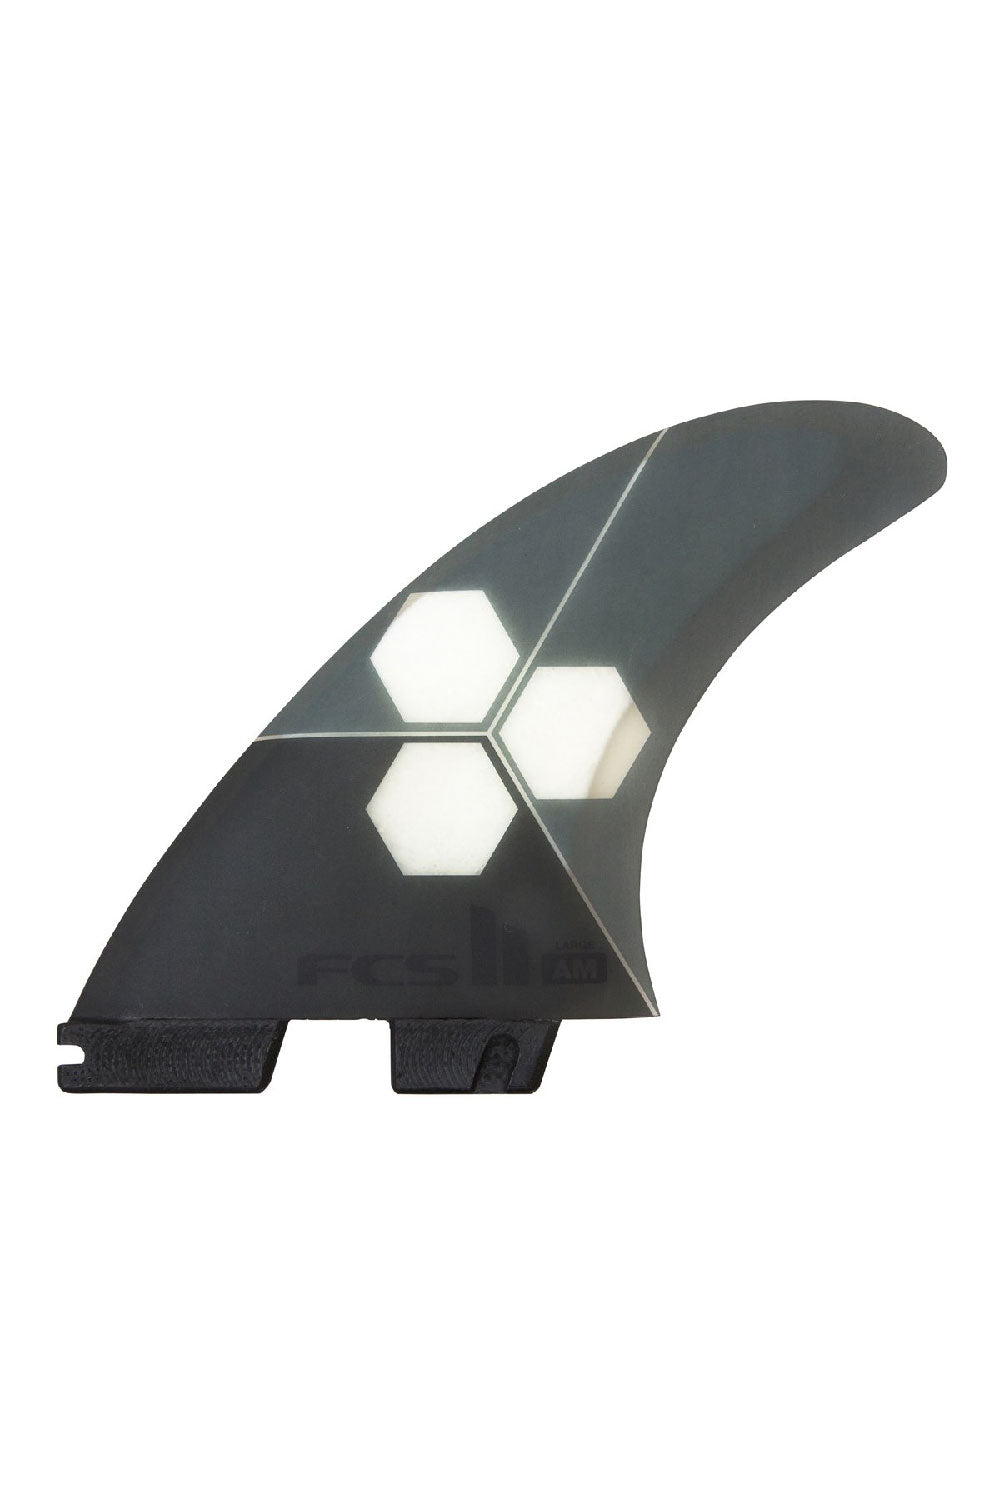 FCS 2 AM PC Ultra Light Tri Quad Fin Set